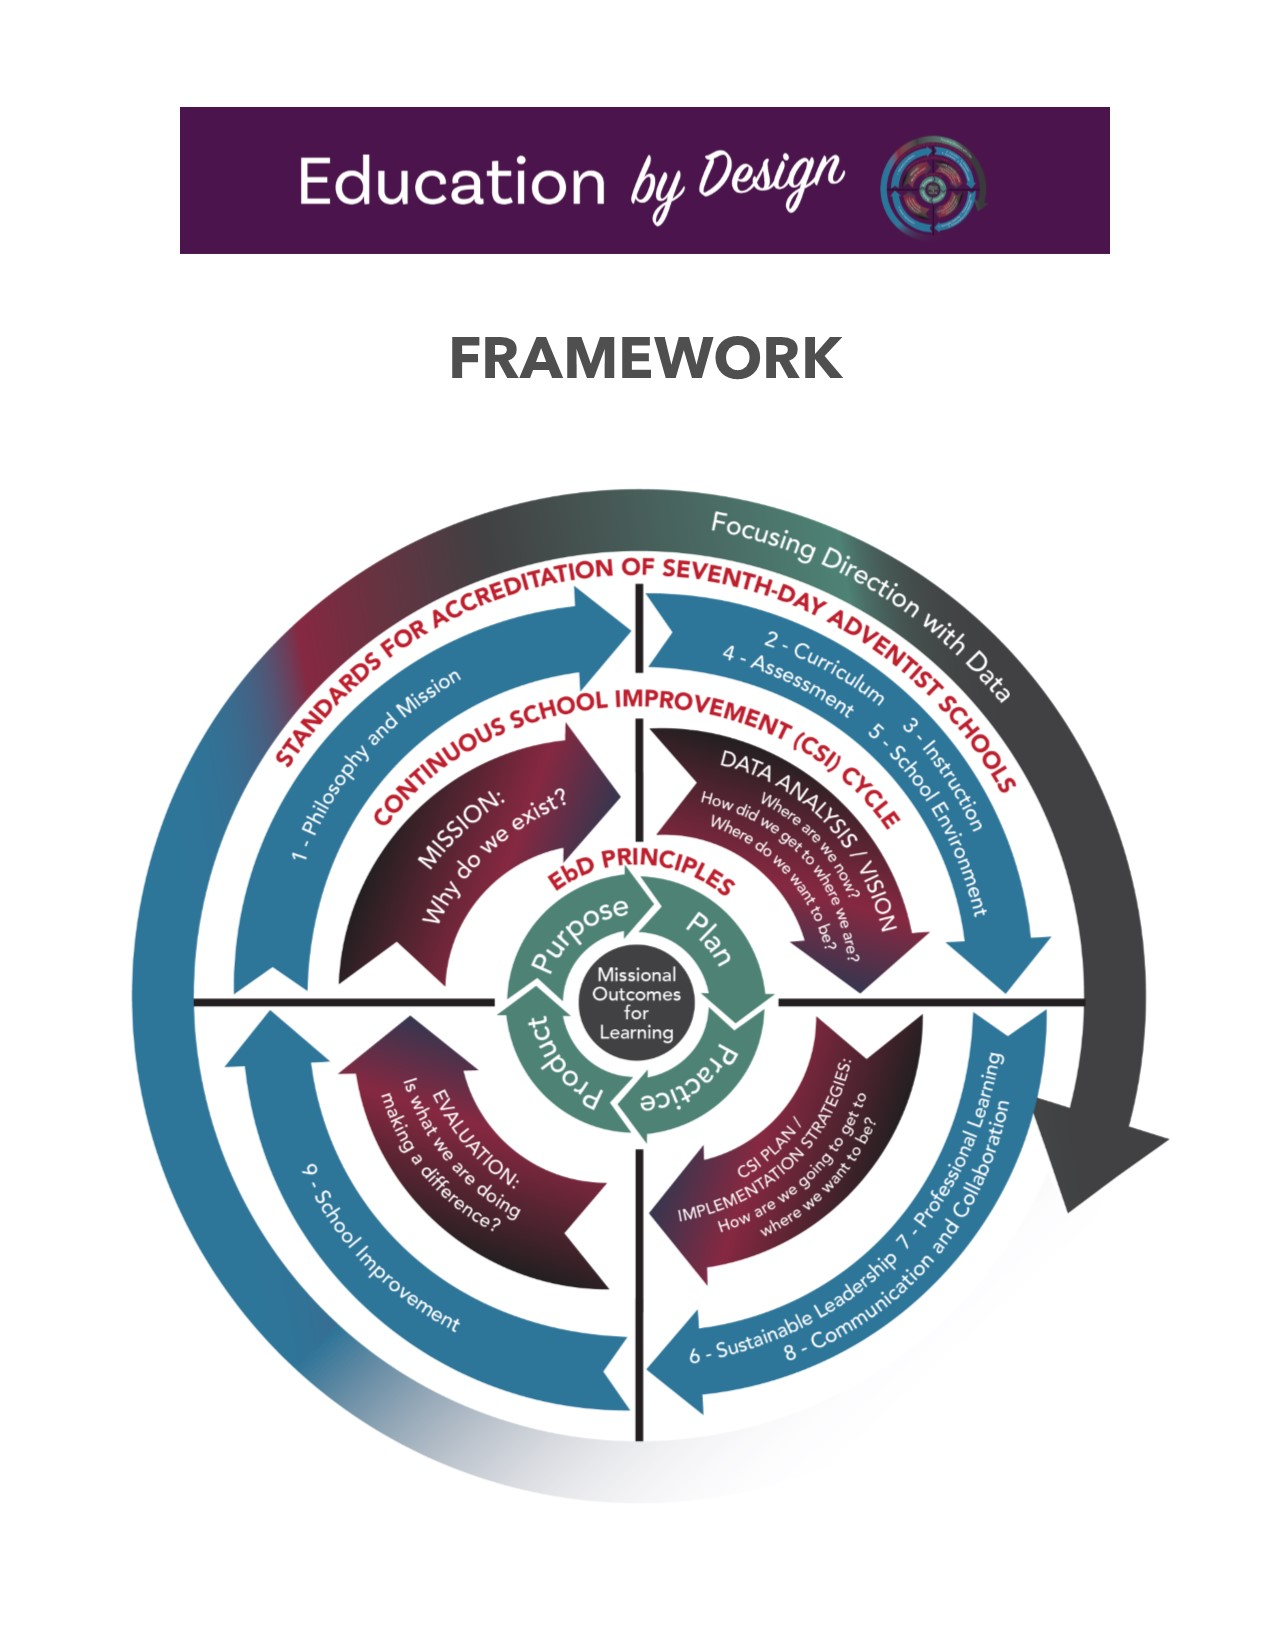 Journey to Excellence Framework